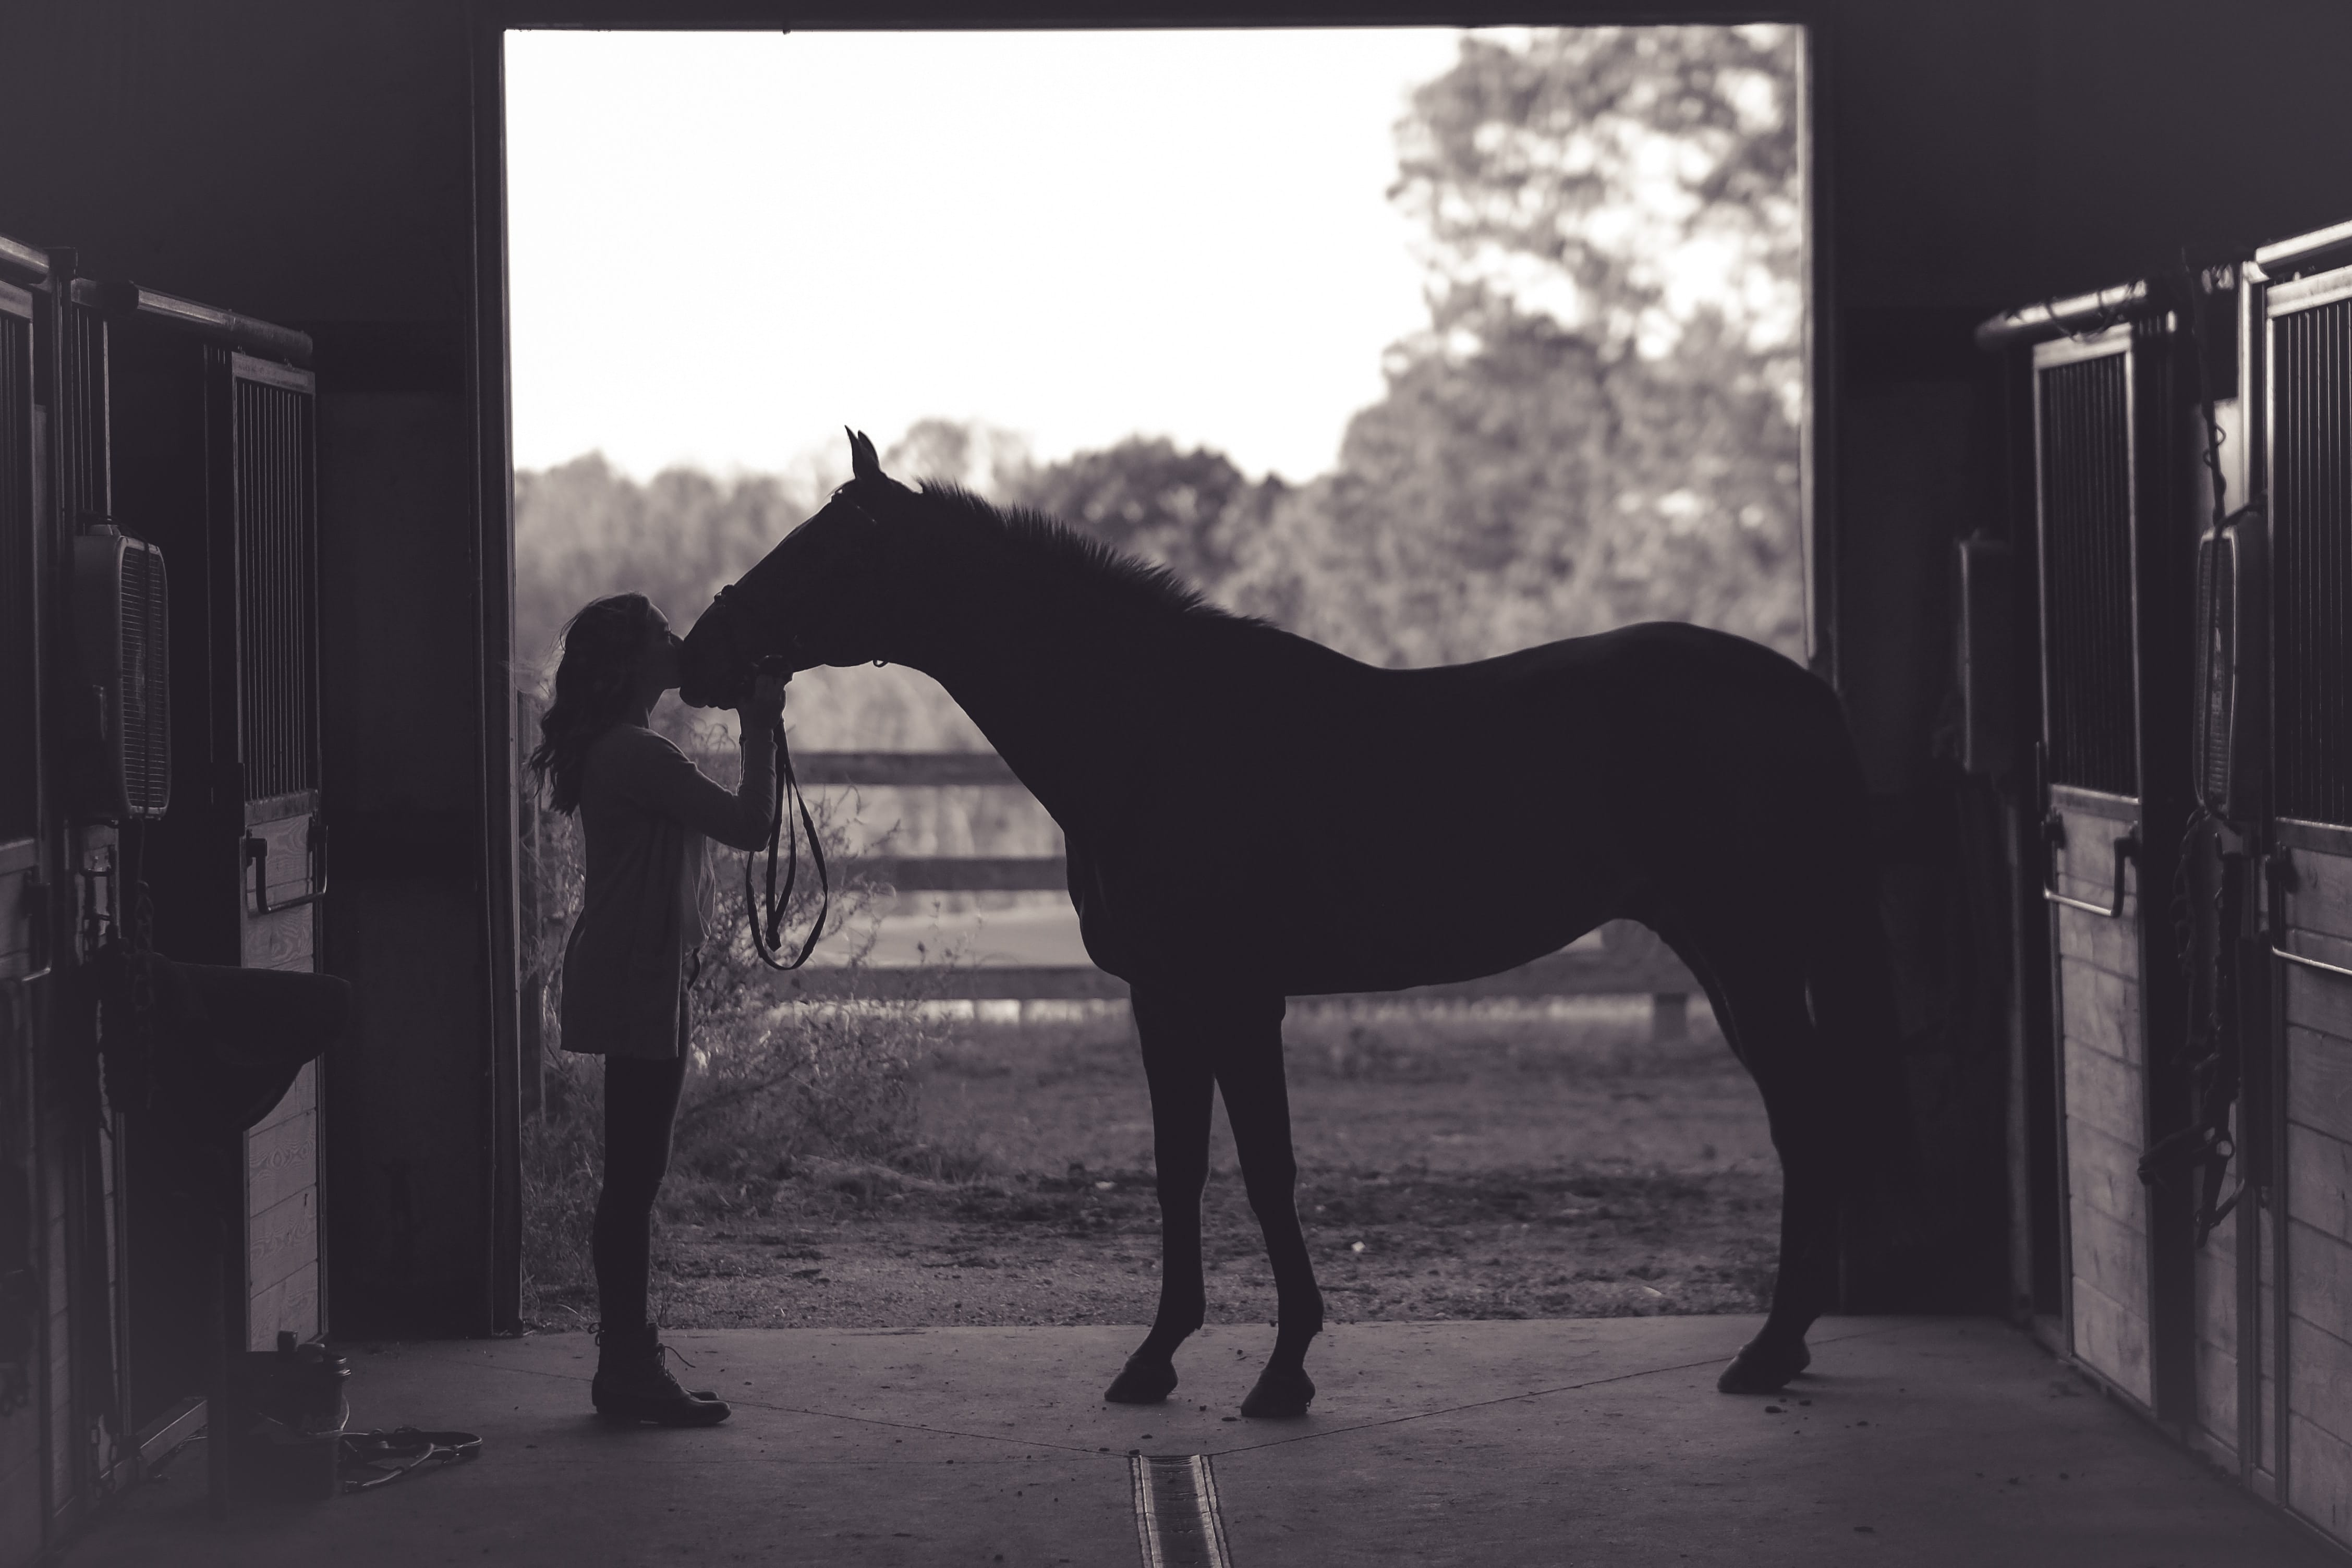 Grayscale photo of woman and horse in stable; image by Kenny Webster, via Unsplash.com.